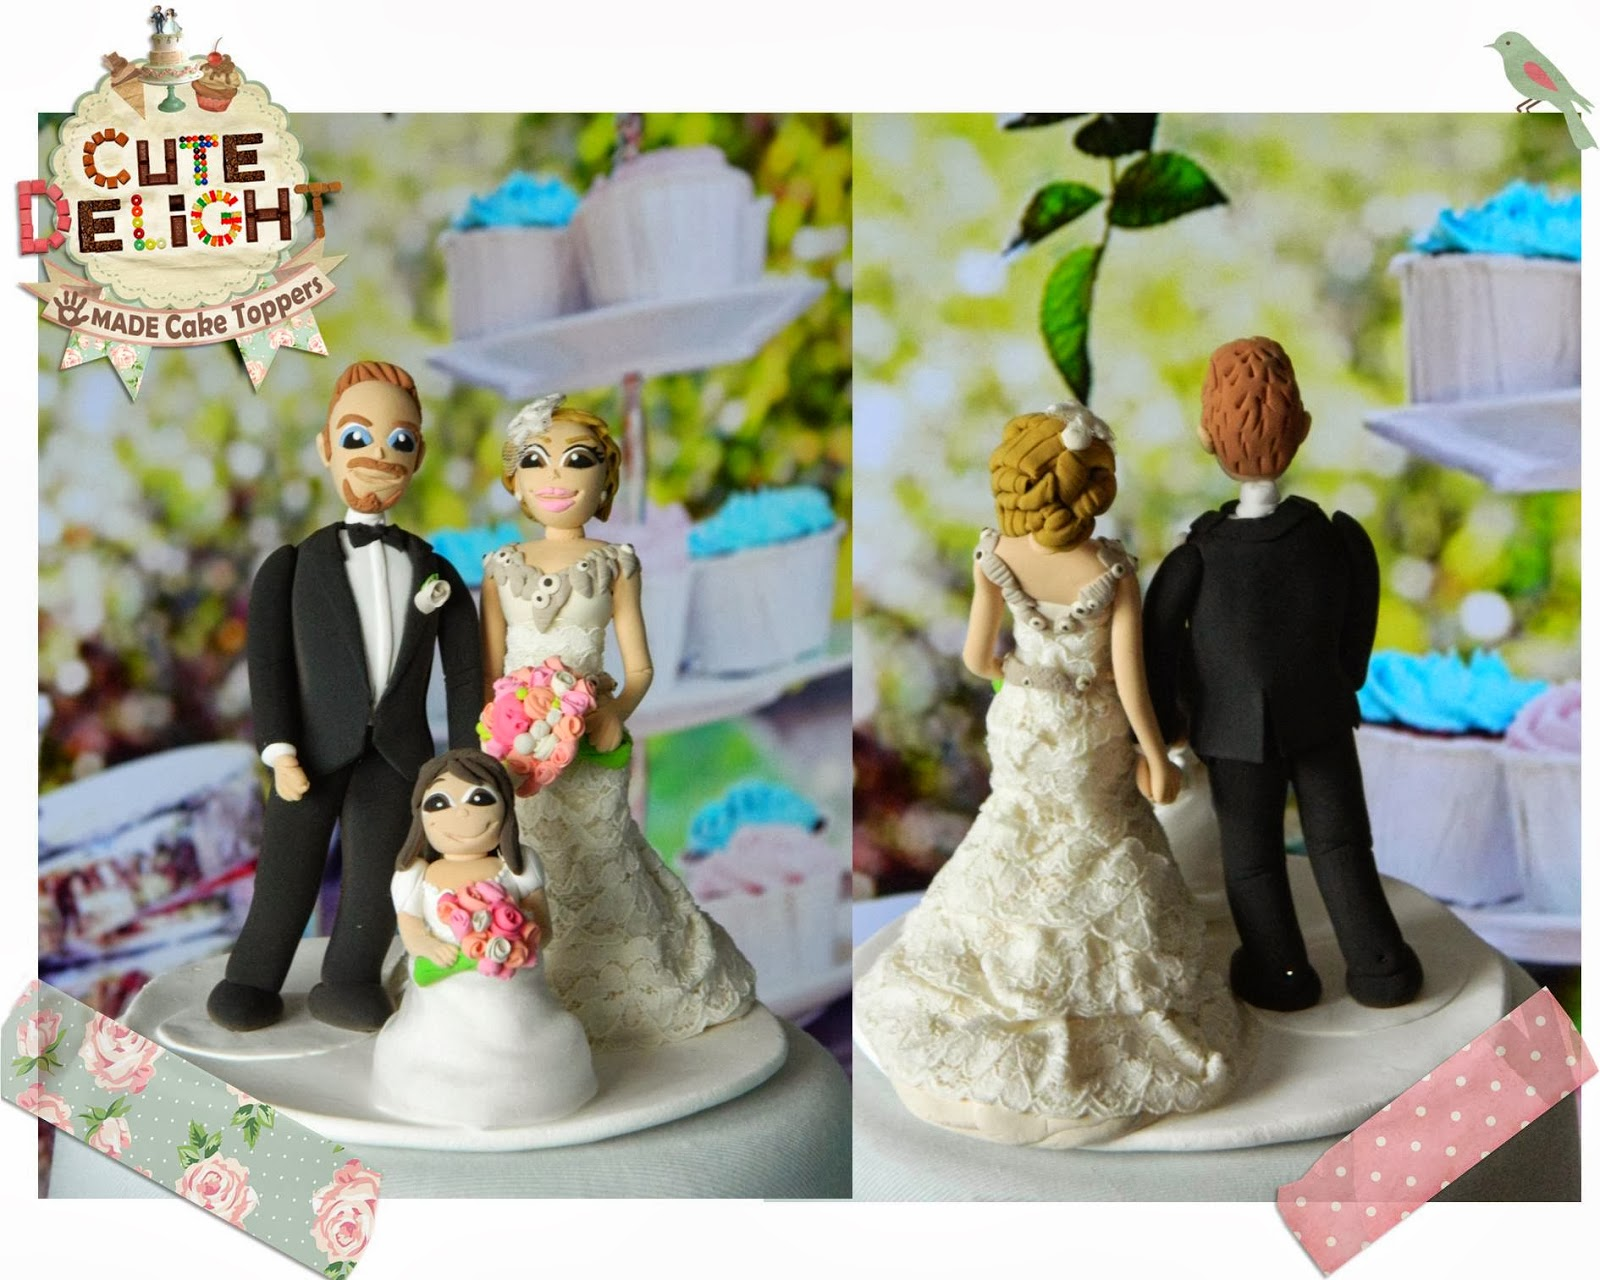 wedding cake toppers, custom cake topper, funny cake toppers, cake